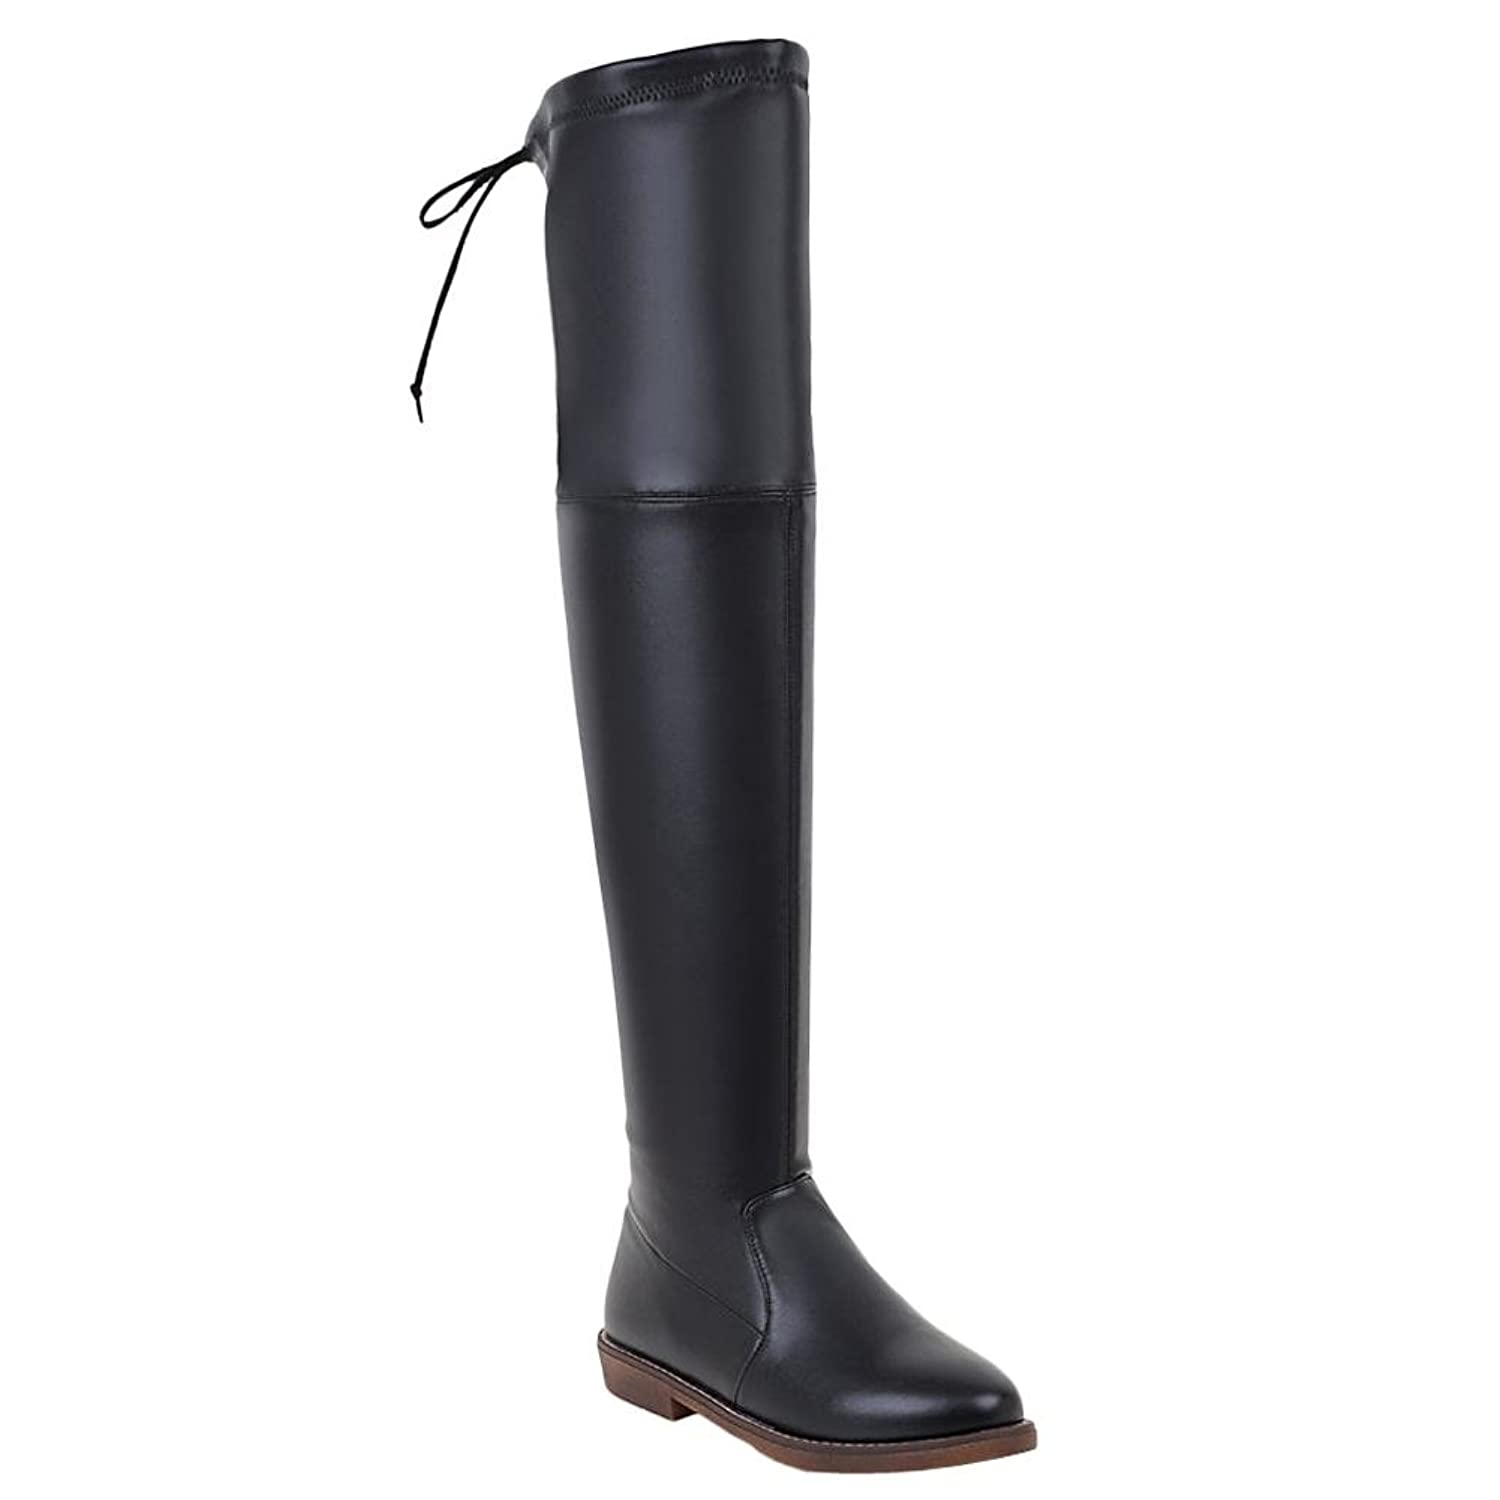 Show Shine Women's Fashion Lacing Low Heel Platform Riding Boots